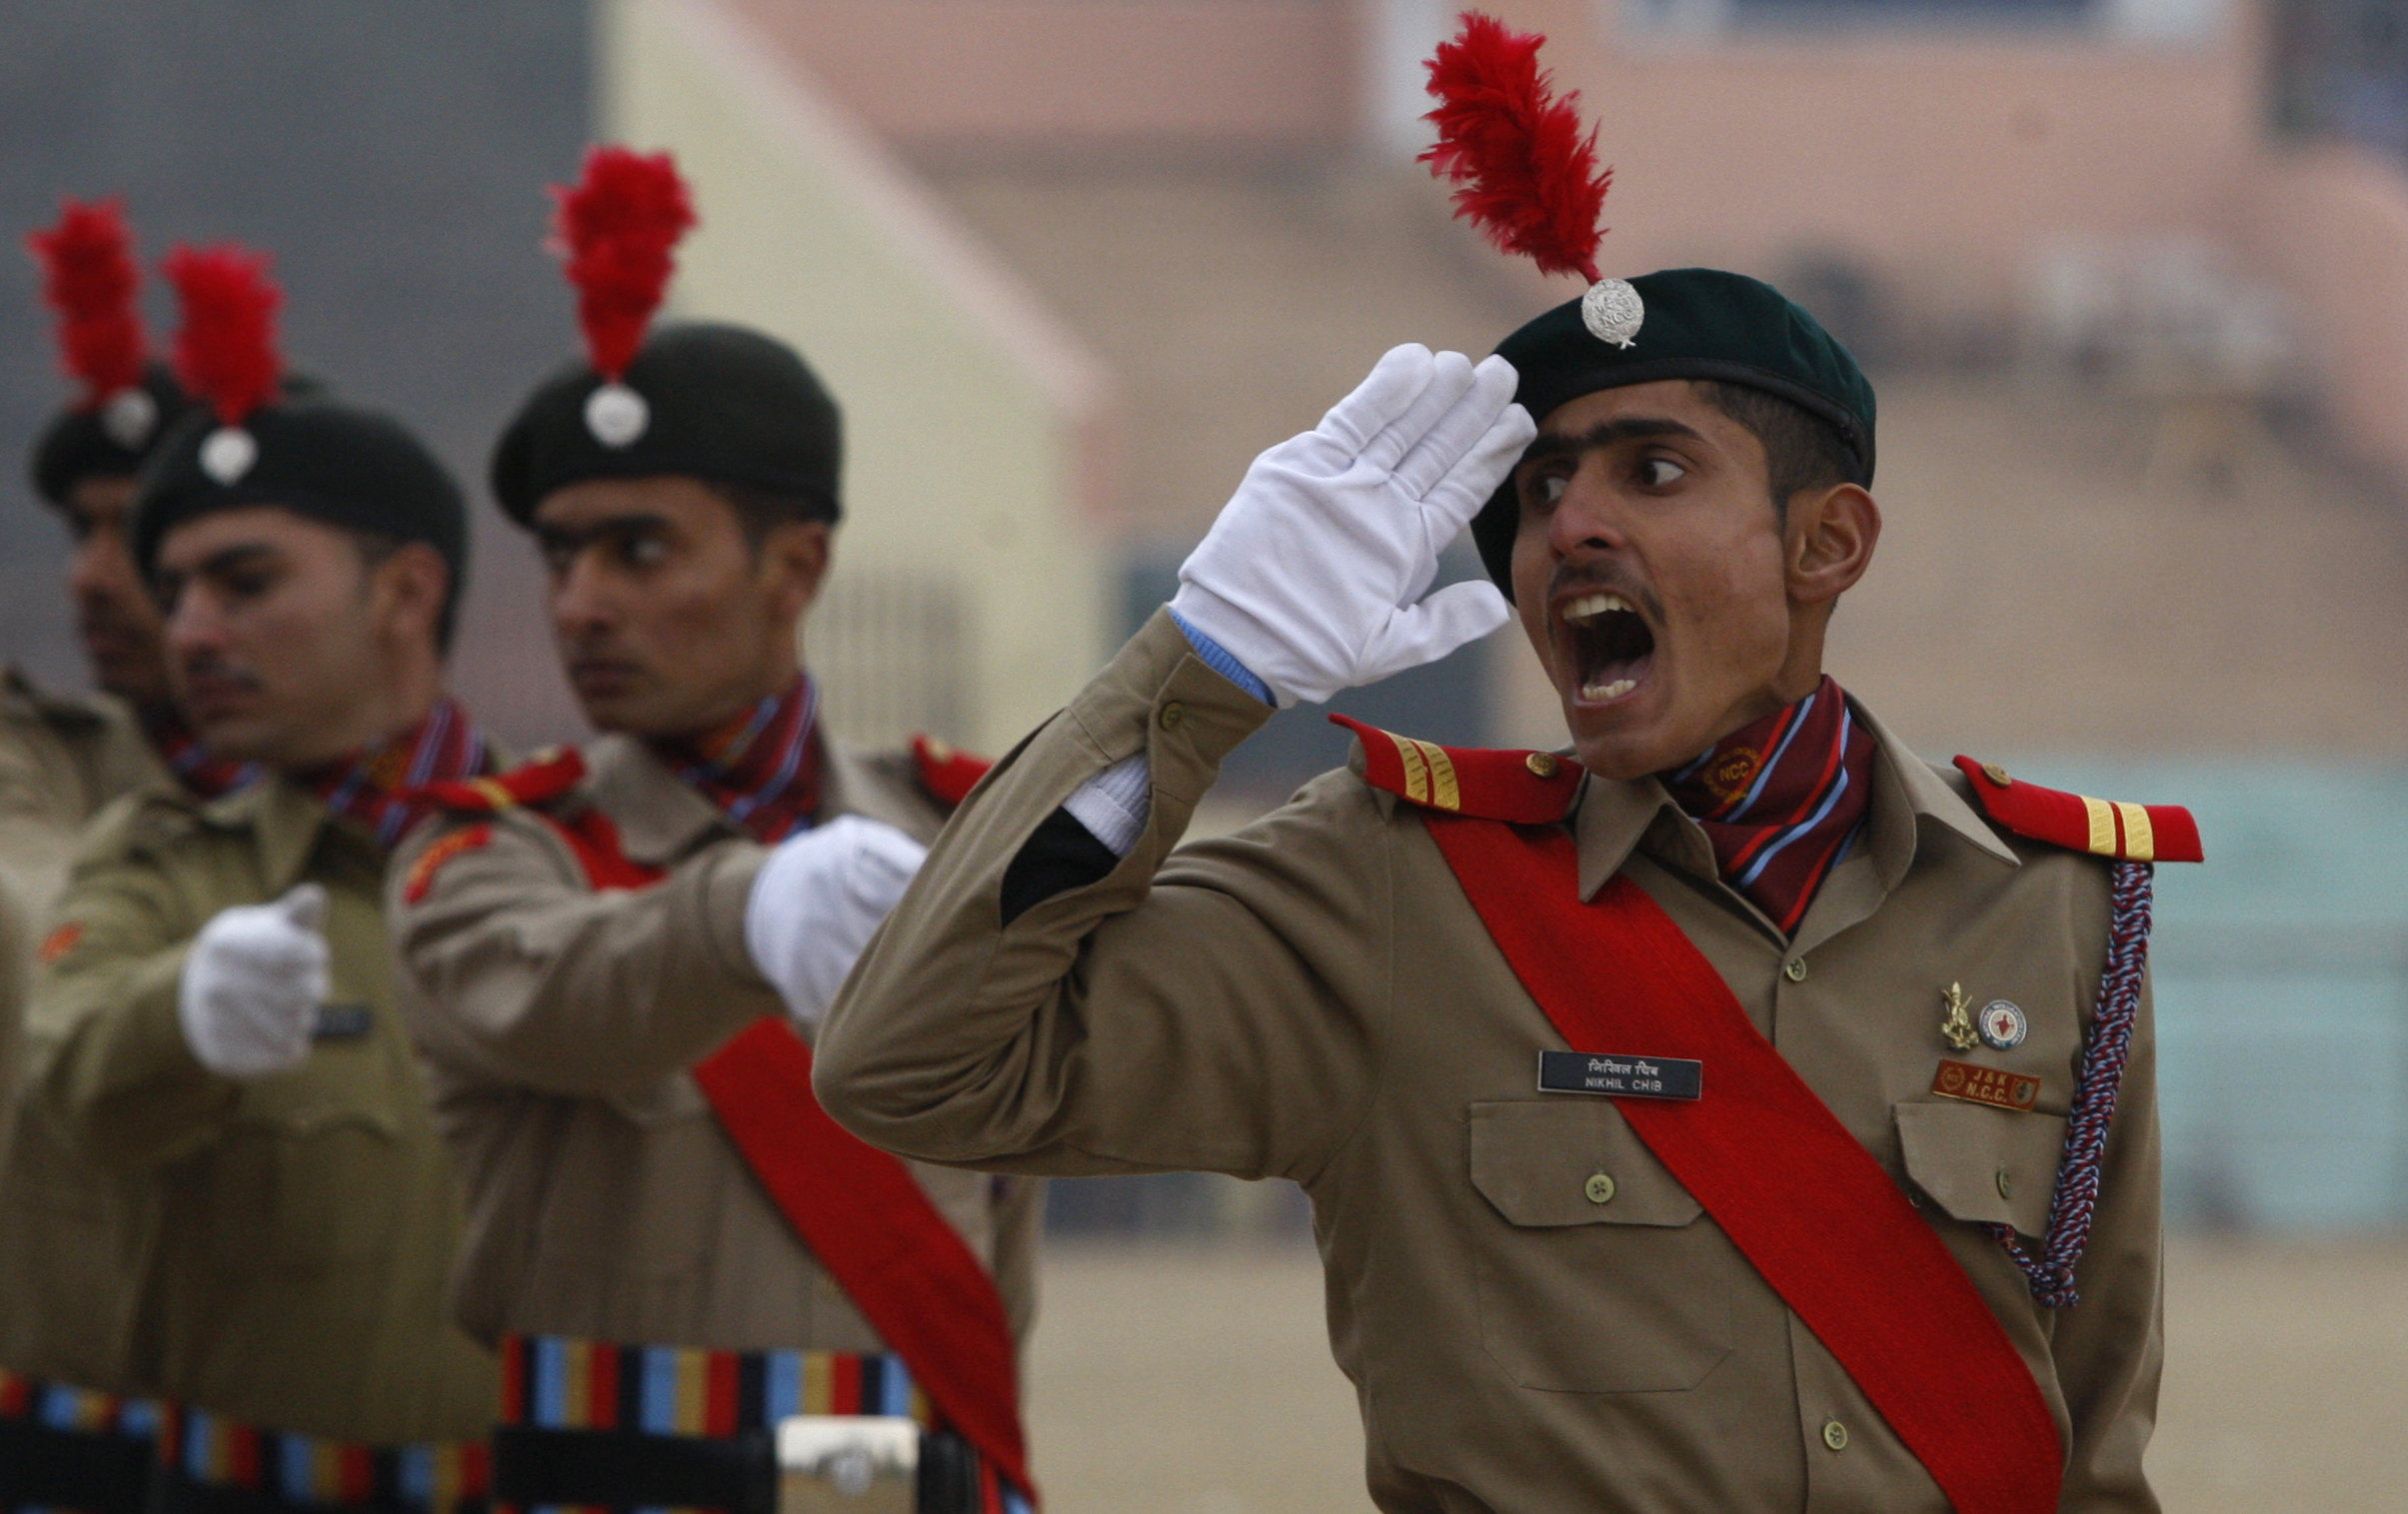 A National Cadet Corps members during a Republic Day parade in Jammu, 2015.